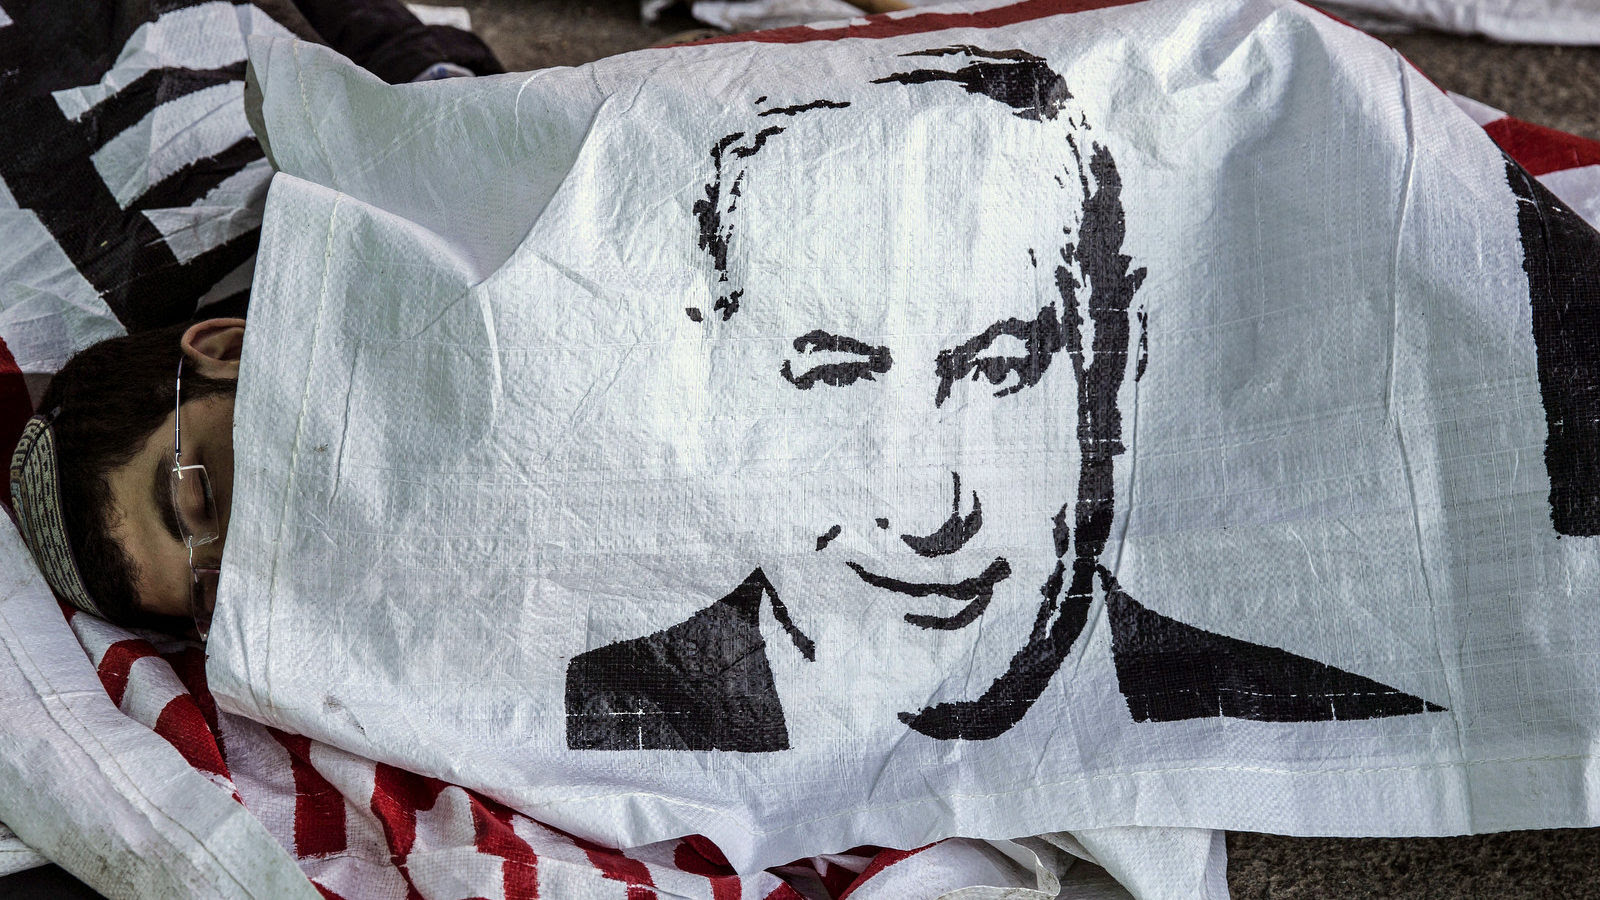 """An Israeli settler sleeps under a banner of Israeli Prime Minister Benjamin Netanyahu, in the Jewish settlement of Beit El after a night stand off with police, near the West Bank town of Ramallah, Wednesday, July 29, 2015. The Israeli Prime Minister's office said Wednesday it has approved the """"immediate construction"""" of 300 housing units in the West Bank settlement of Beit El. The announcement came amid a standoff, where Israeli settlers clashed with Israeli forces as authorities began to dismantle the contested West Bank settlement housing complex after Israel's Supreme Court ruled Wednesday that it must be demolished. (AP Photo/Tsafrir Abayov)"""